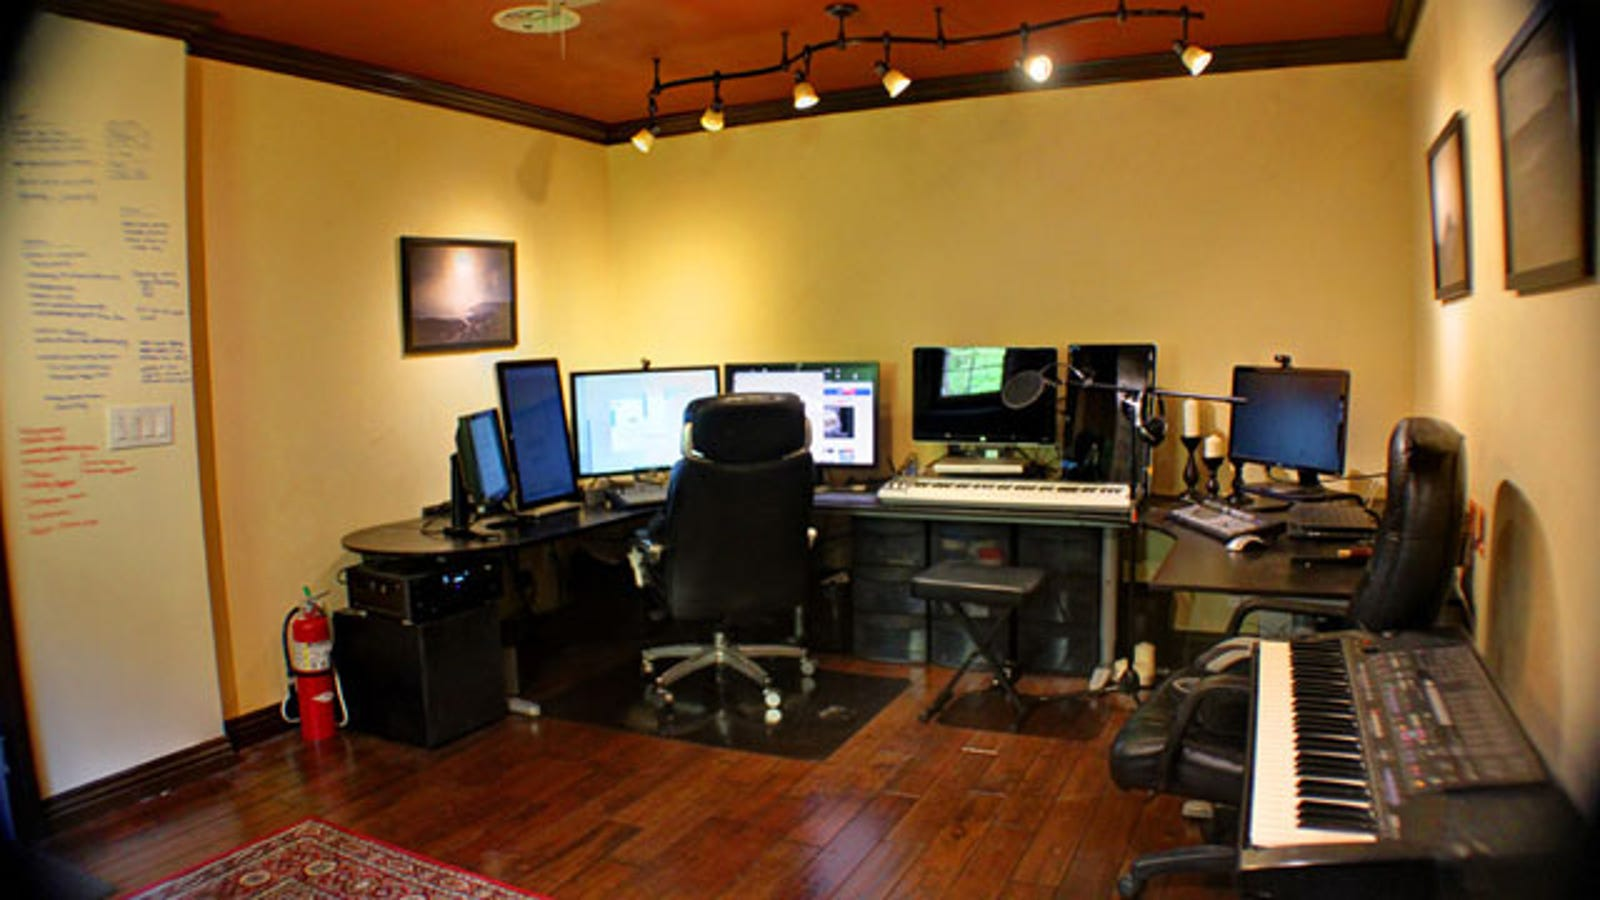 Entire office decked Periscope Lifehacker The Deckedout Home Office In Barn